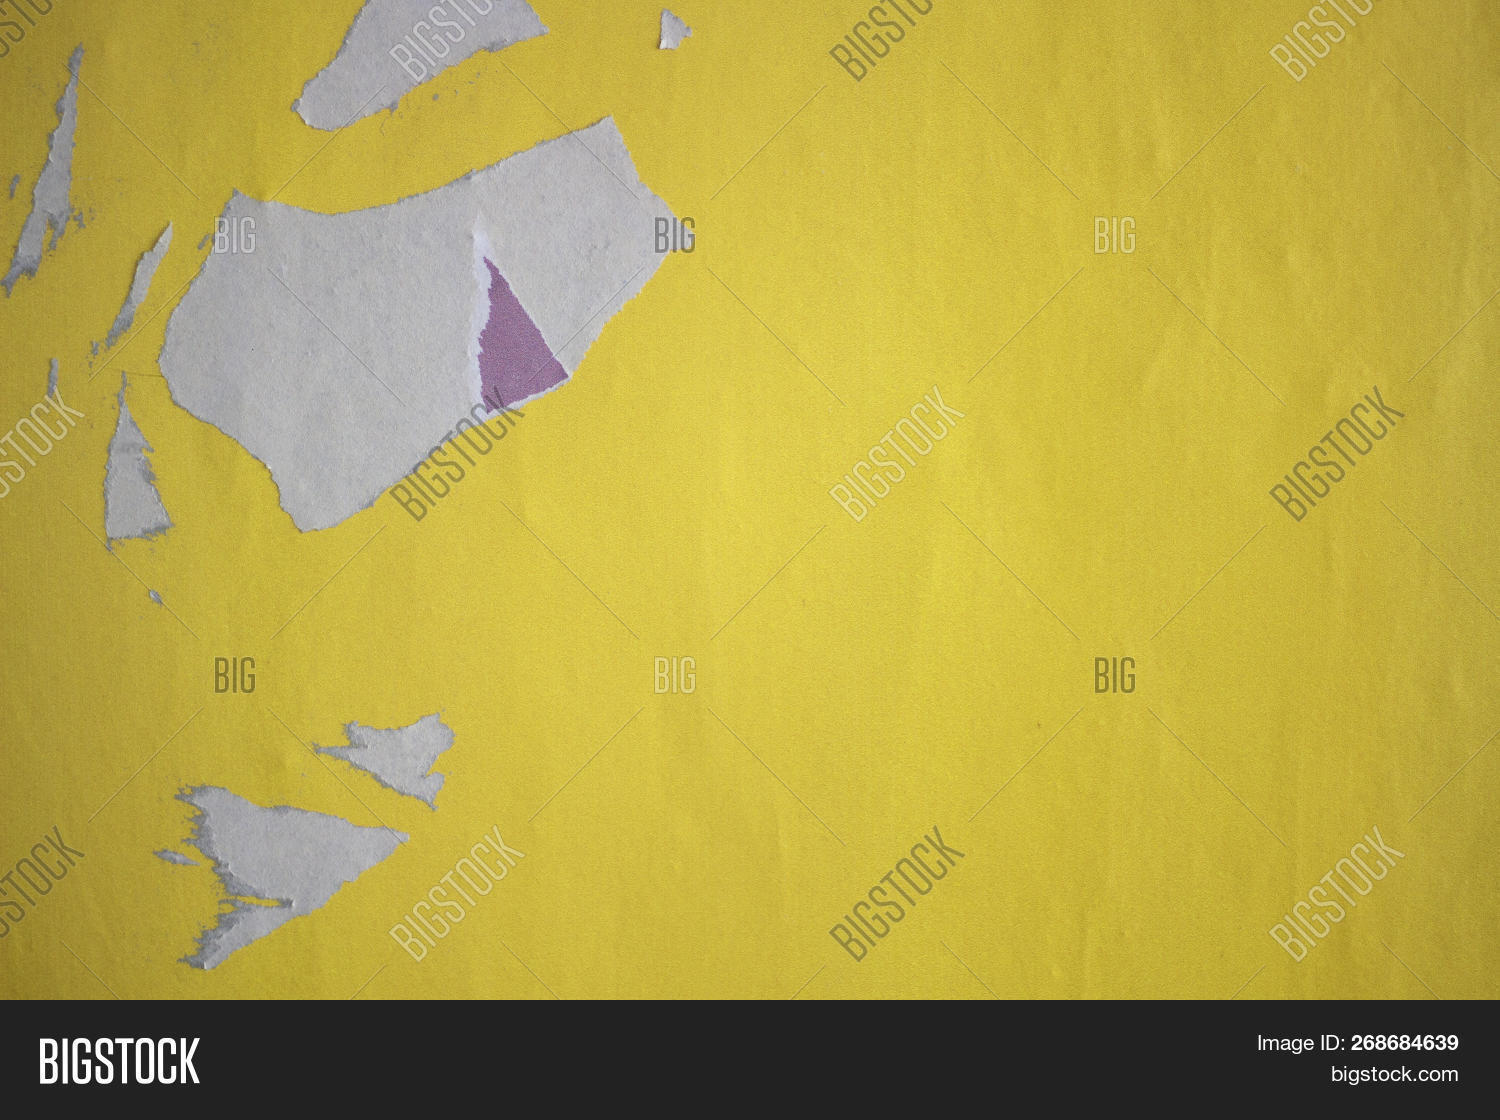 abstract,advertise,advertisement,advertising,aged,announcement,art,backdrop,background,billboard,blank,concept,crease,creased,crumpled,damaged,decay,design,deterioration,dirty,empty,faded,graphic,grunge,grungy,old,paper,pattern,peeling,poster,ragged,retro,rip,ripped,rough,stains,street,surface,texture,textured,torn,urban,vintage,wall,wallpaper,weathered,white,yellow